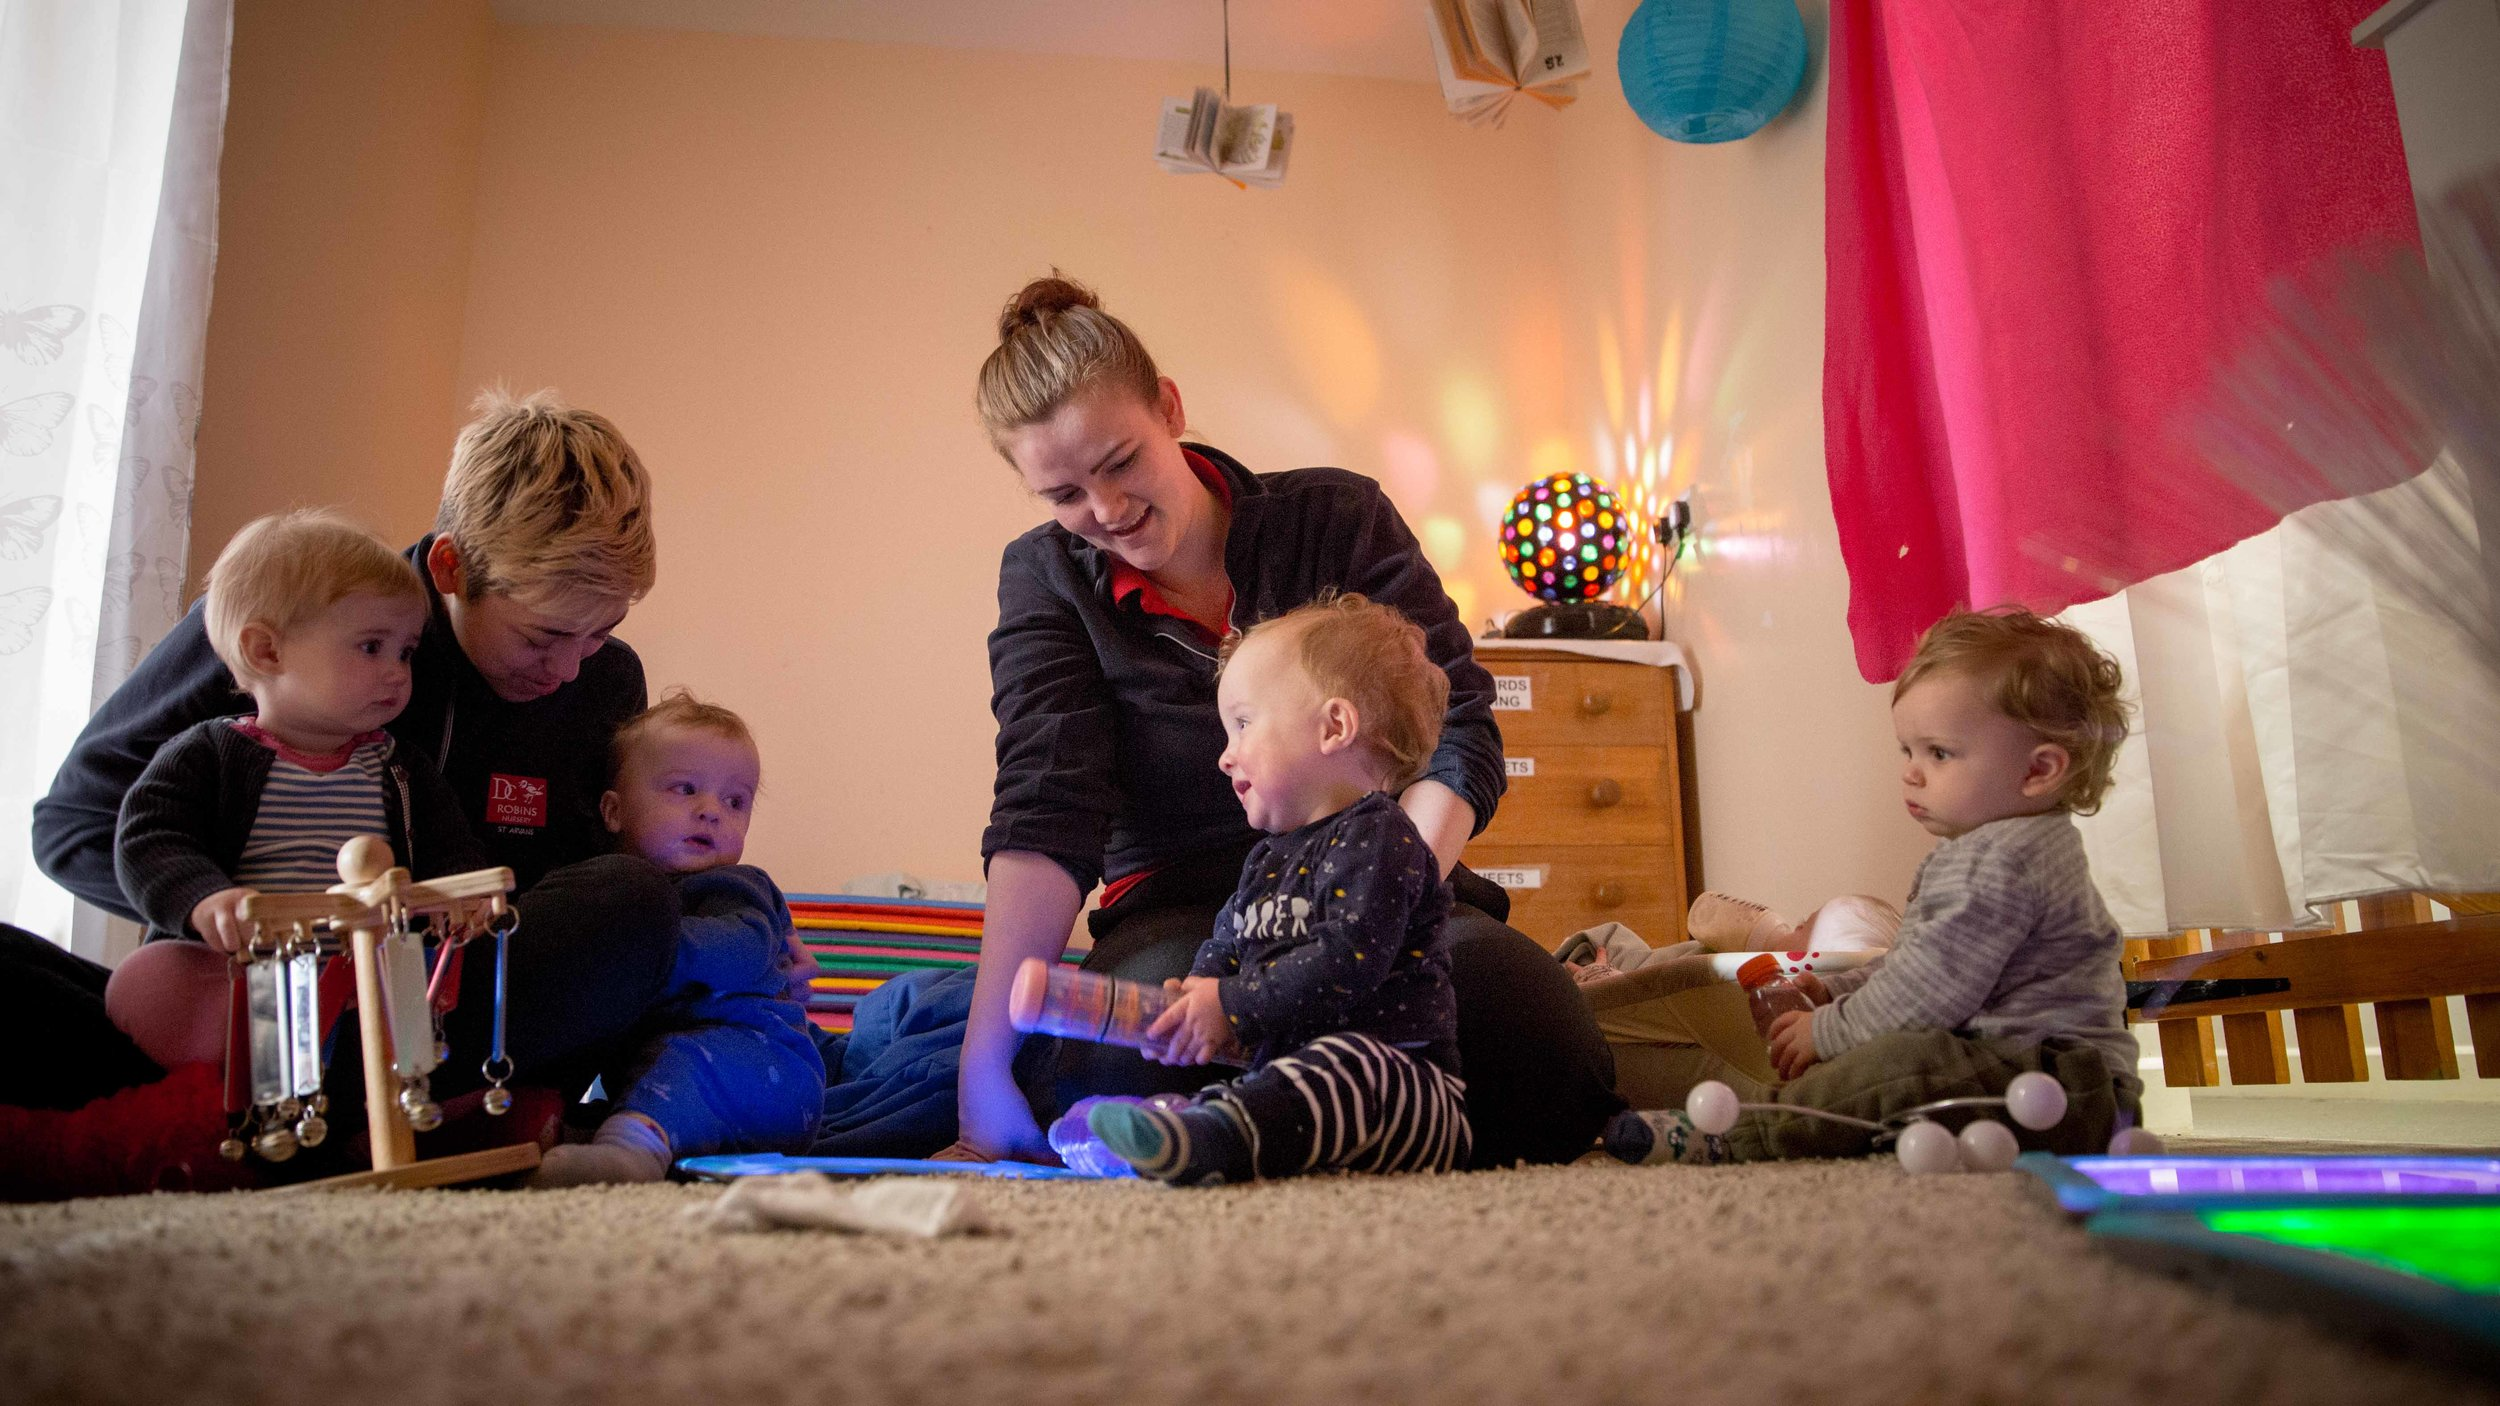 3-Commercial-nursery-school-photographer-chepstow-south-wales-natalia-smith-photography-9.jpg